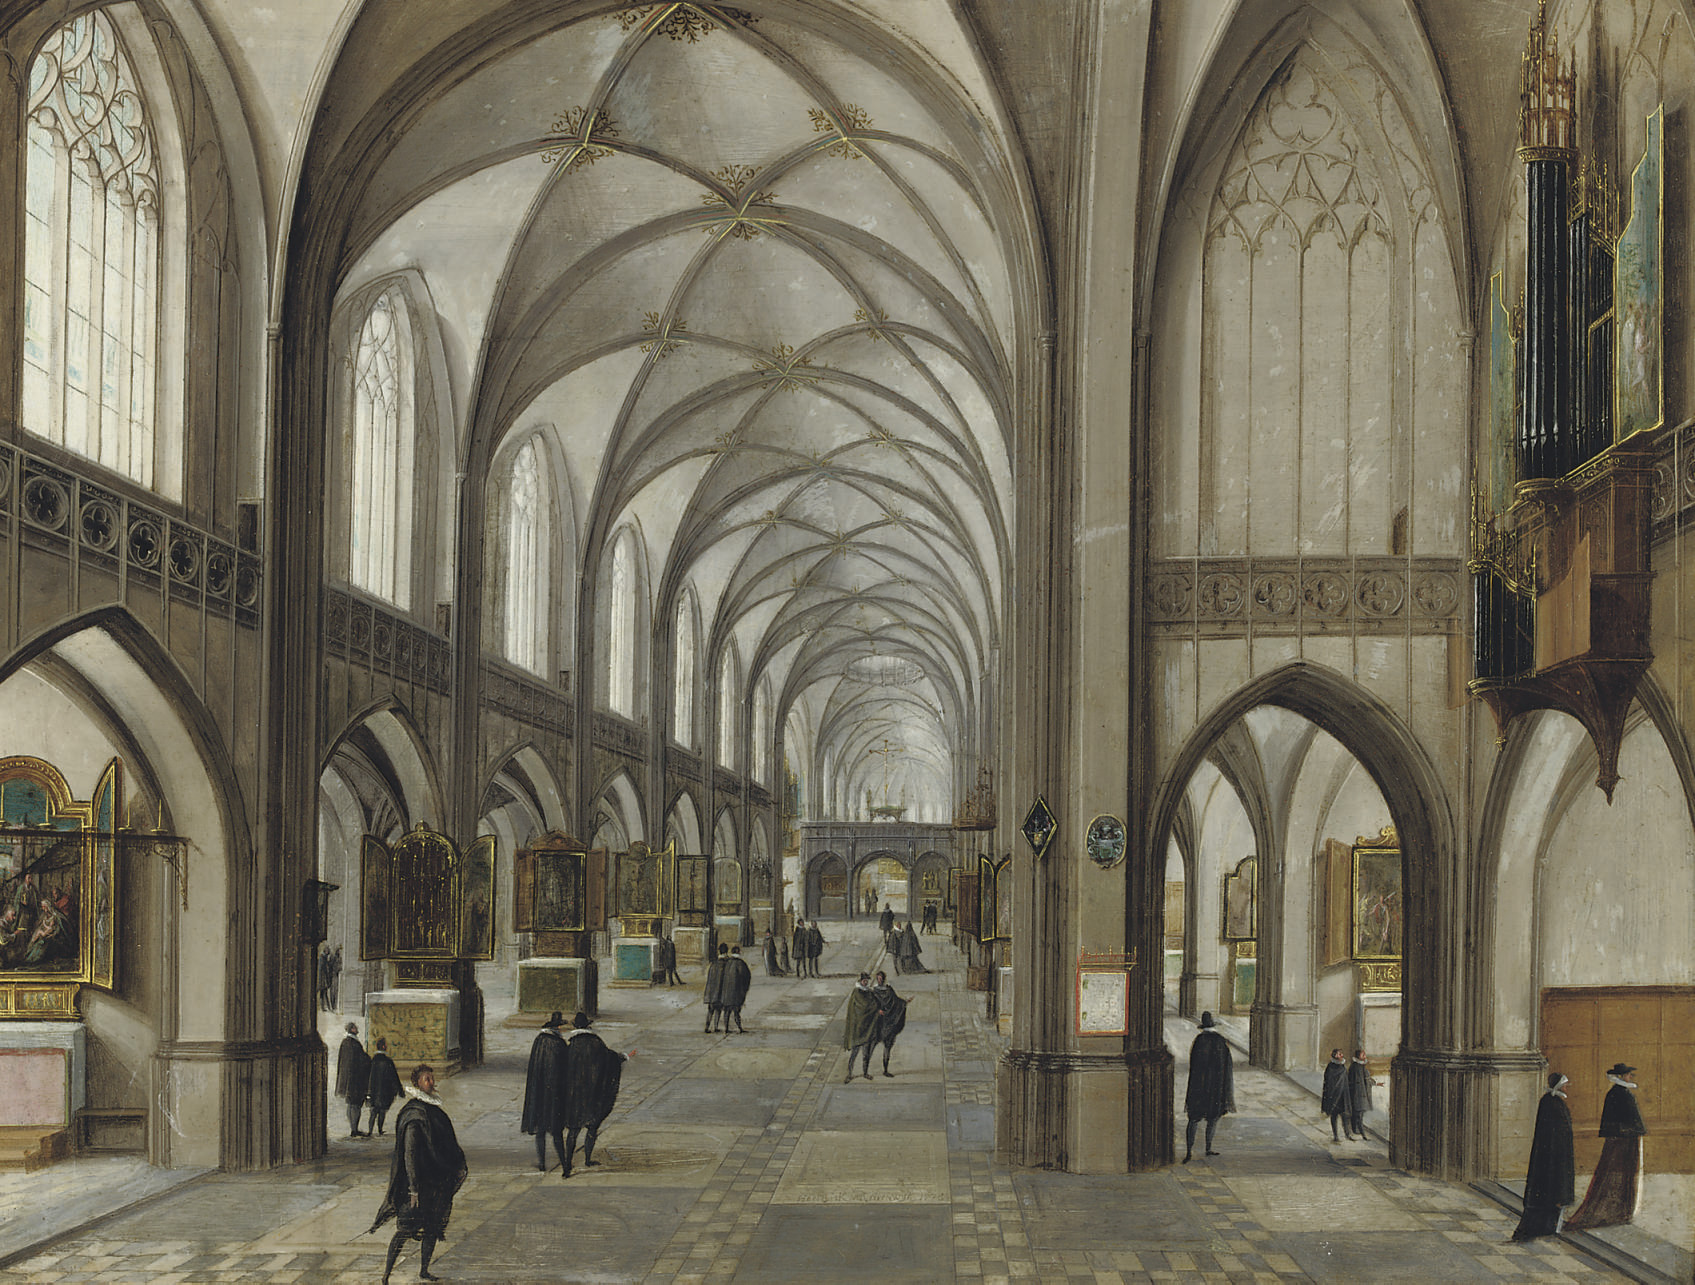 A gothic church interior with elegantly dressed figures